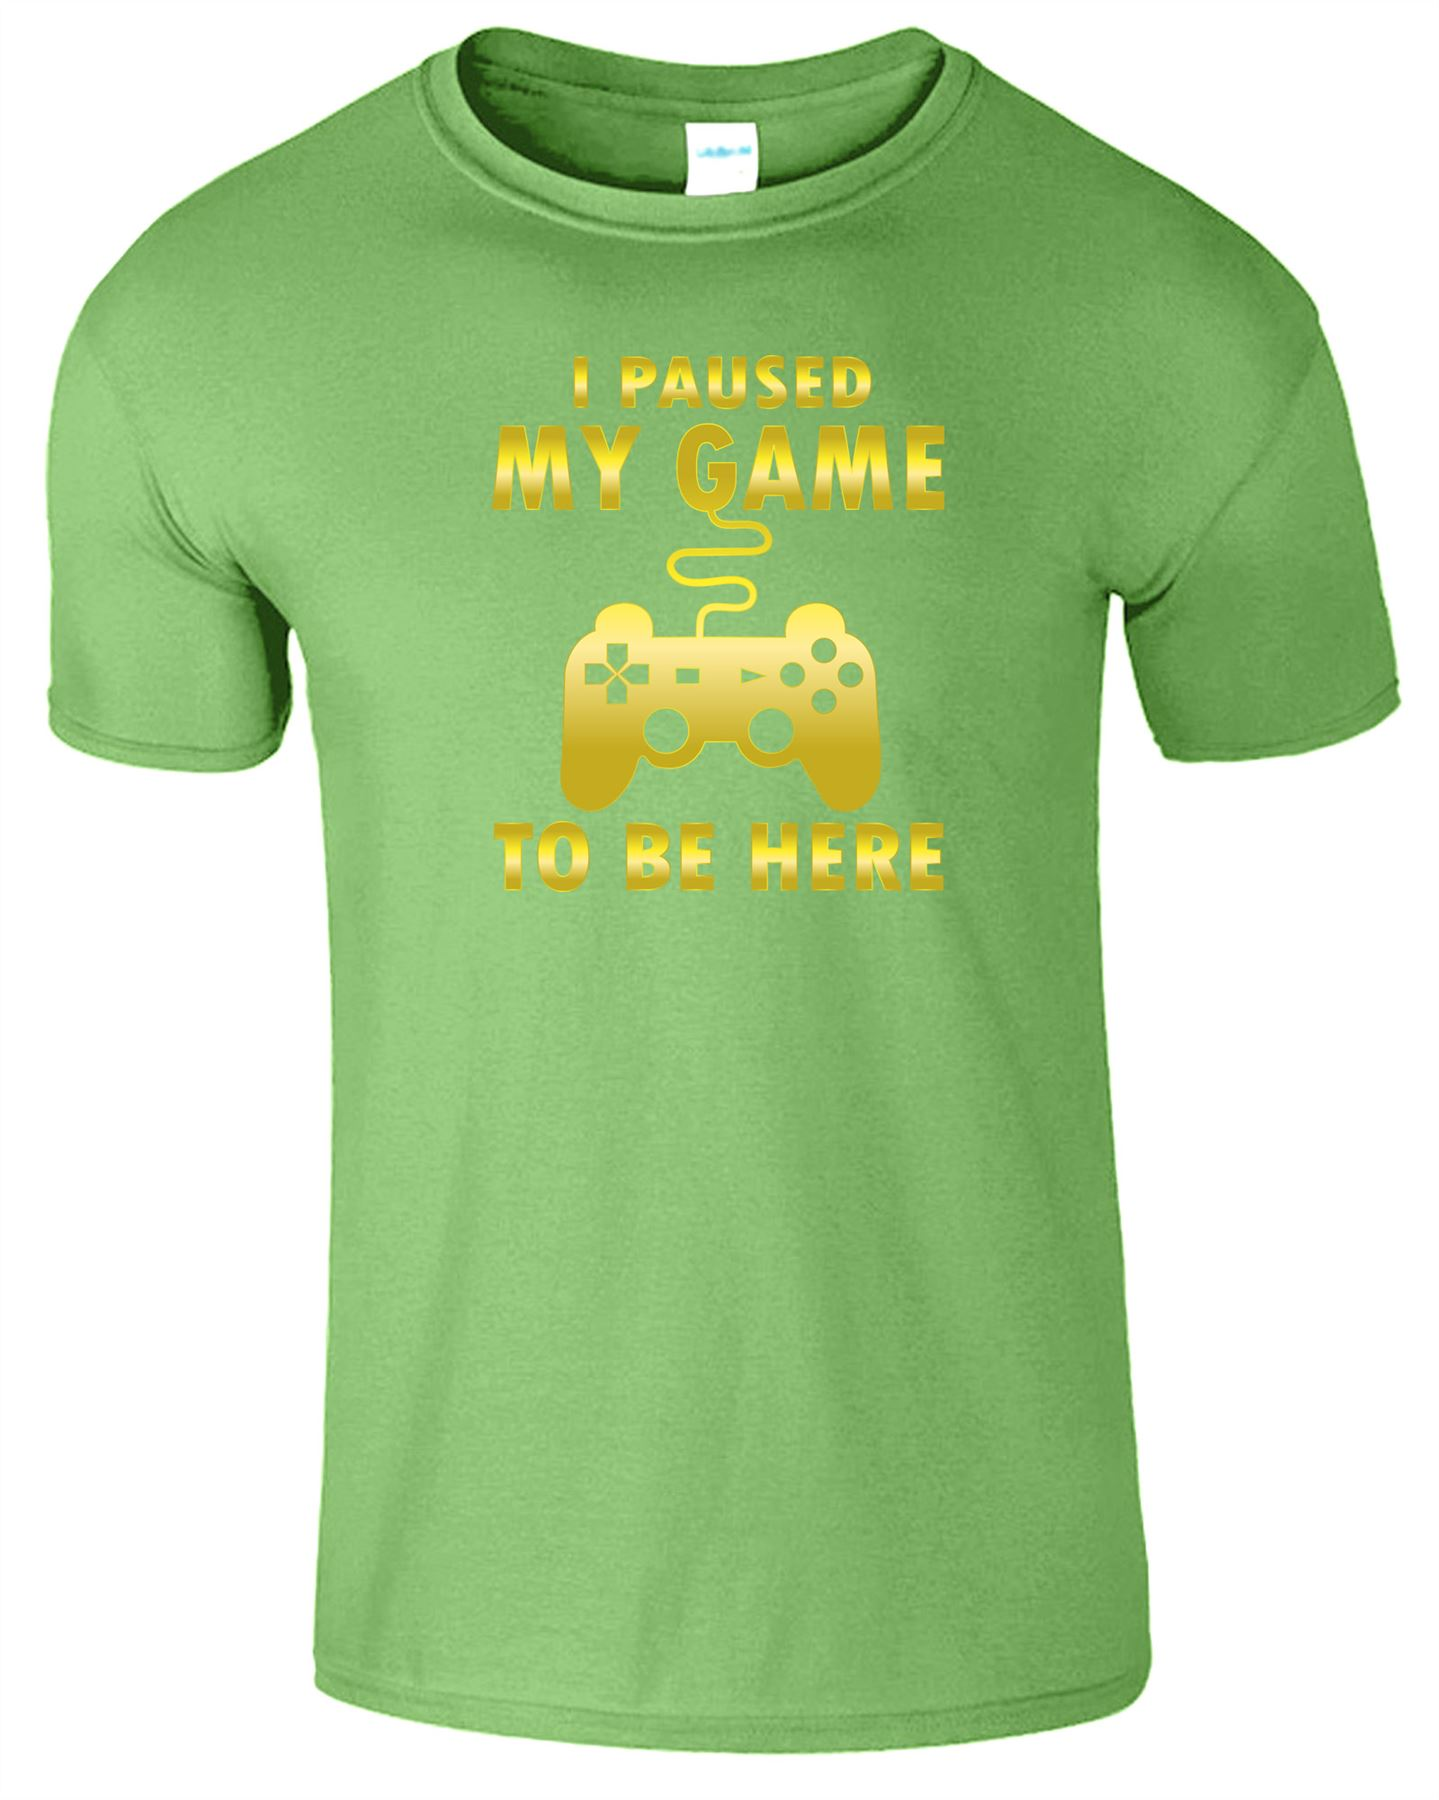 I PAUSED MY GAME TO BE HERE Mens Kids T-Shirt Retro Funny Gamer Top Boys Tshirt